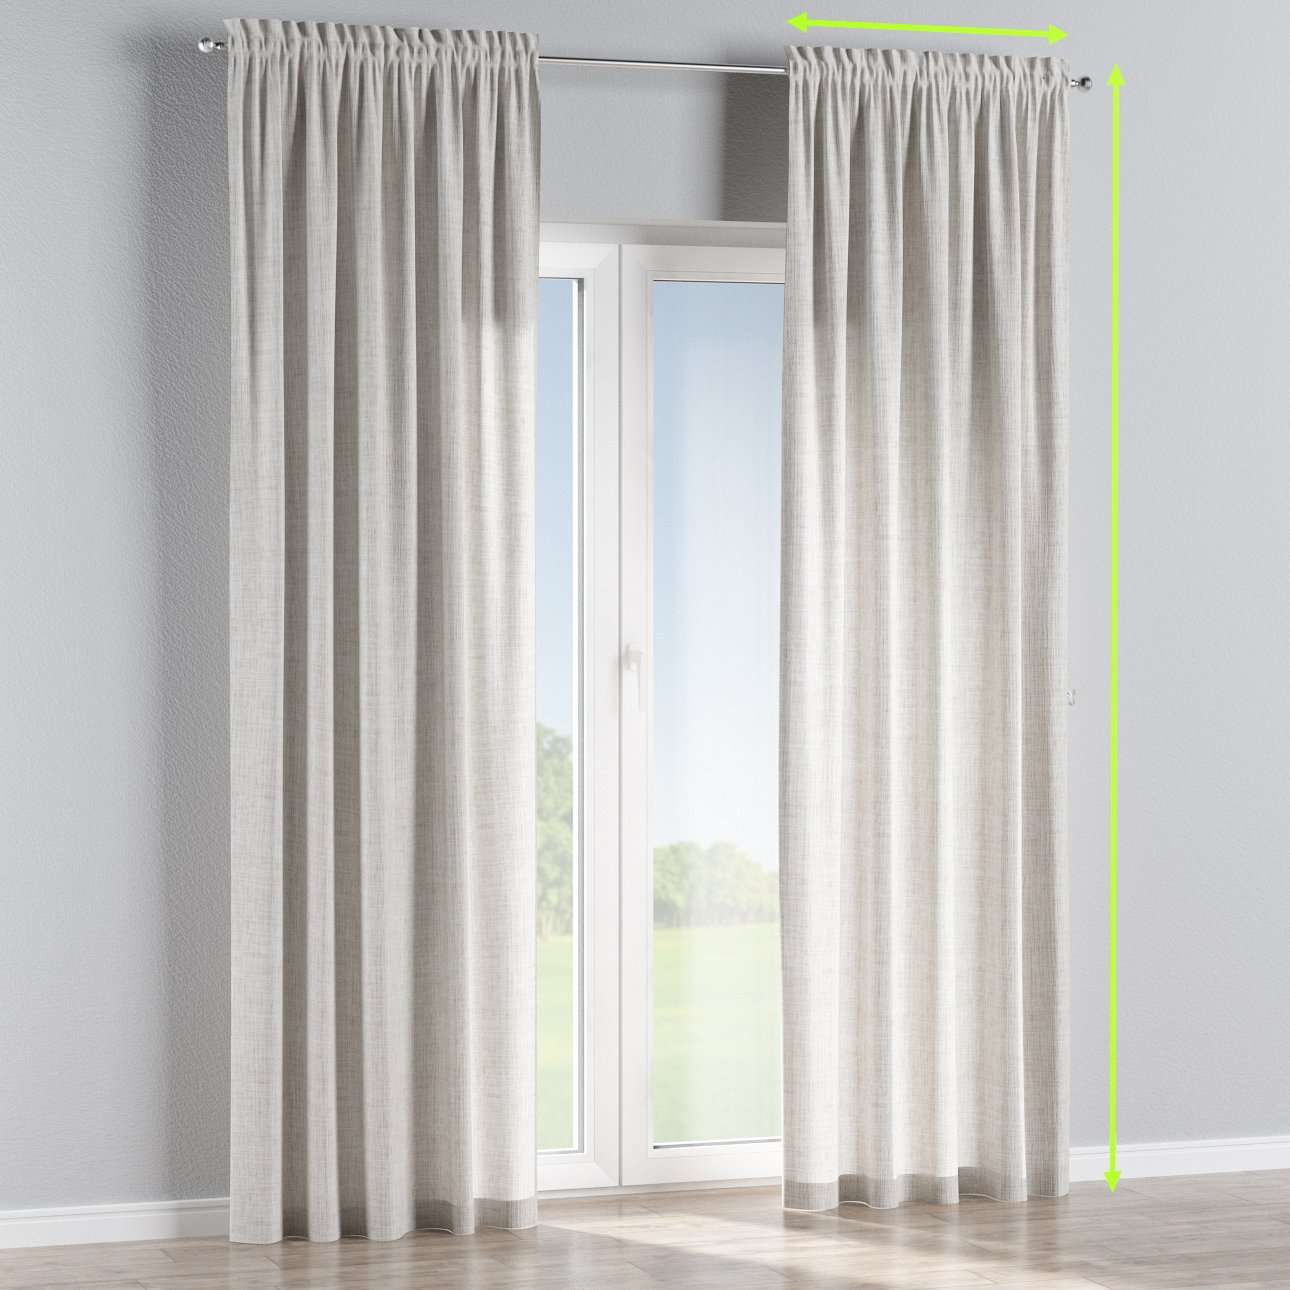 Slot and frill lined curtains in collection Aquarelle, fabric: 140-75